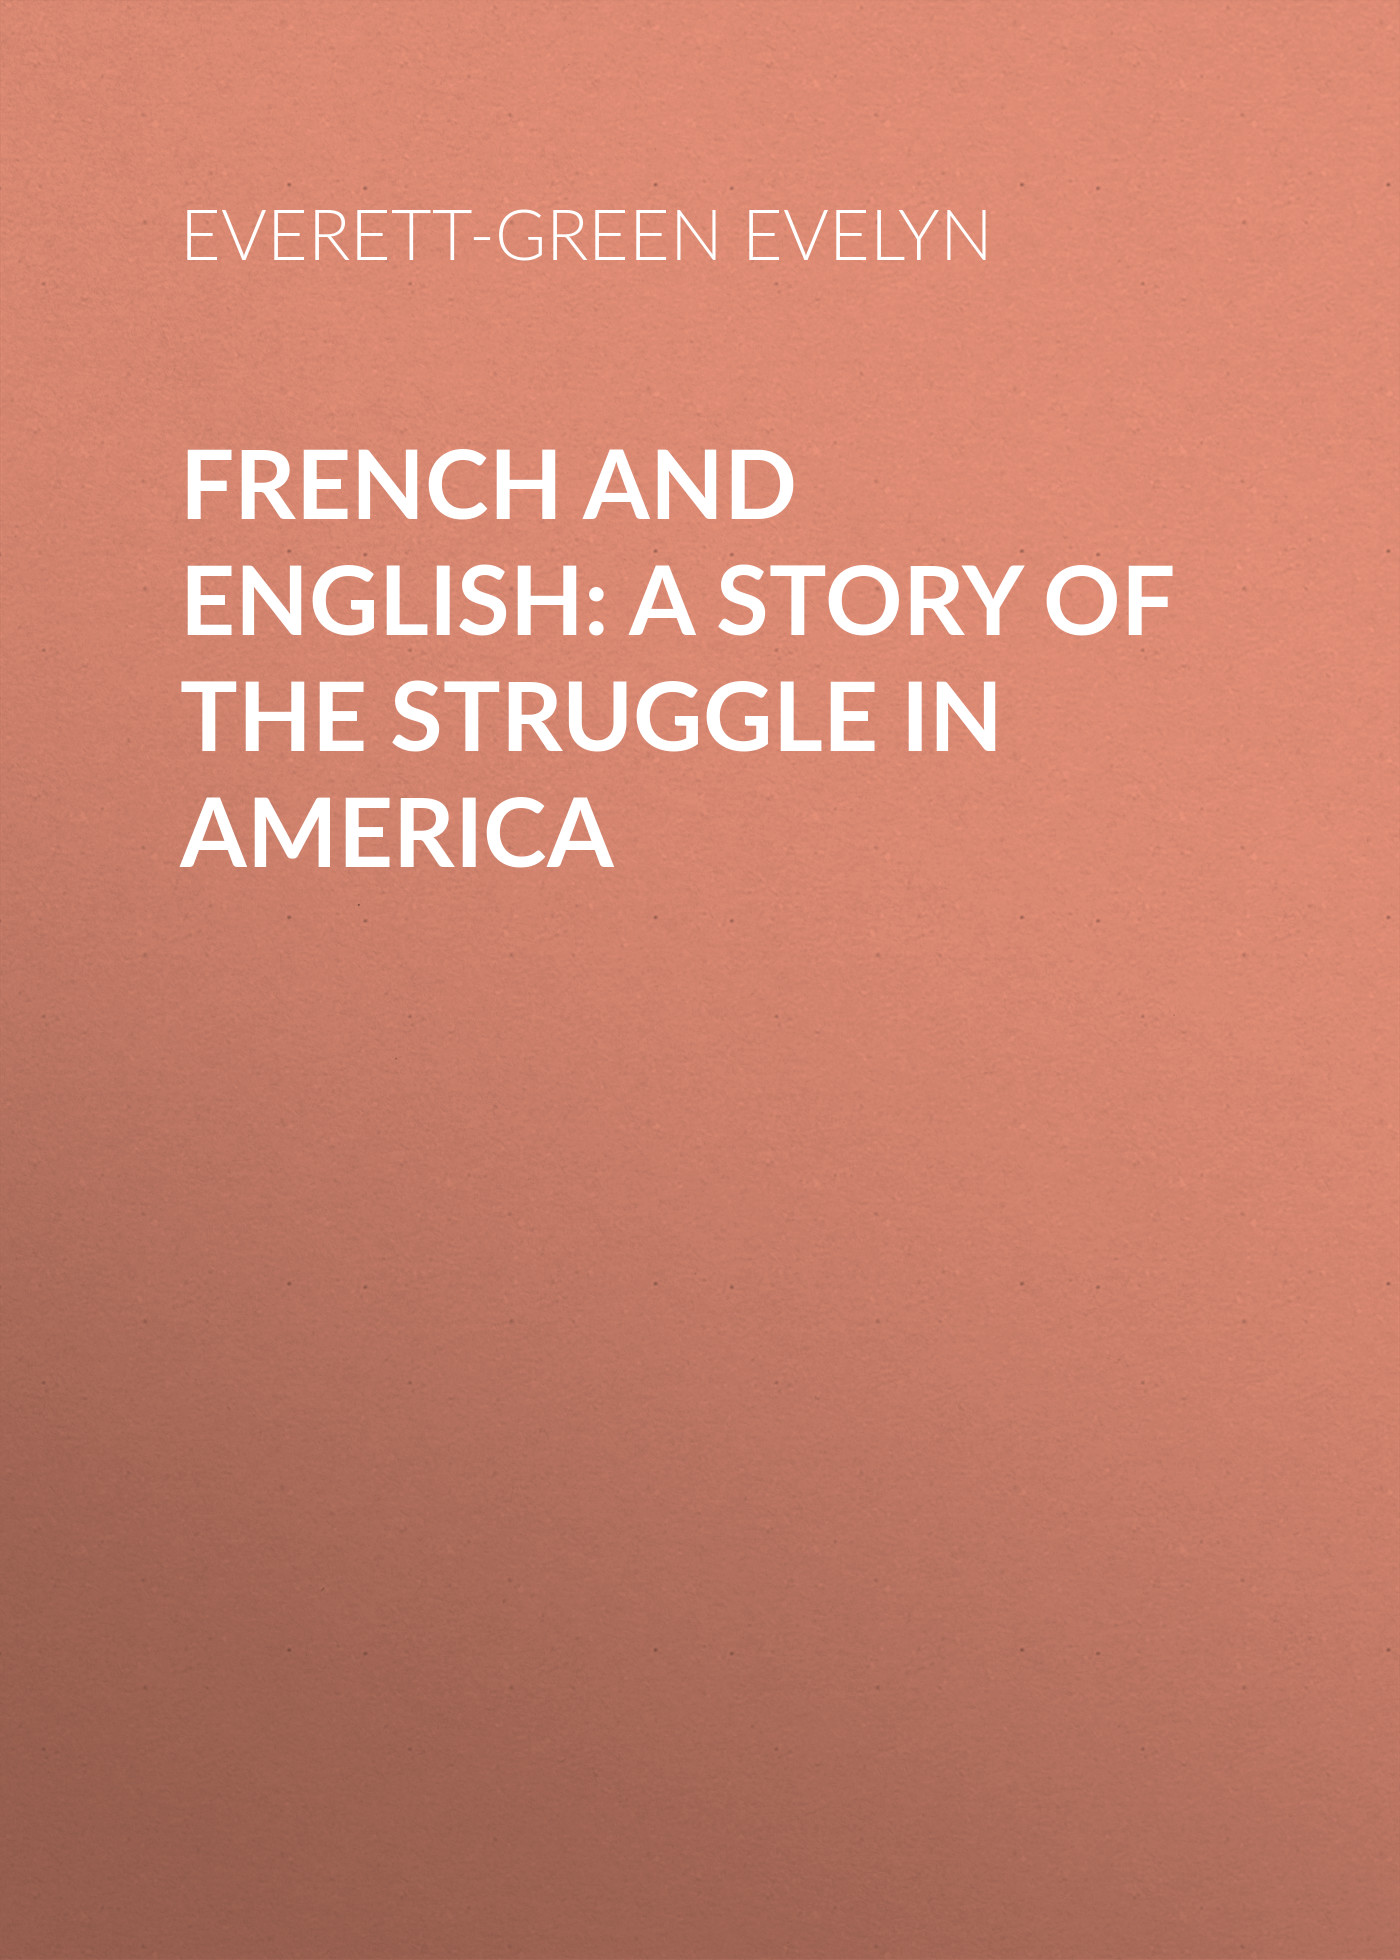 лучшая цена Everett-Green Evelyn French and English: A Story of the Struggle in America